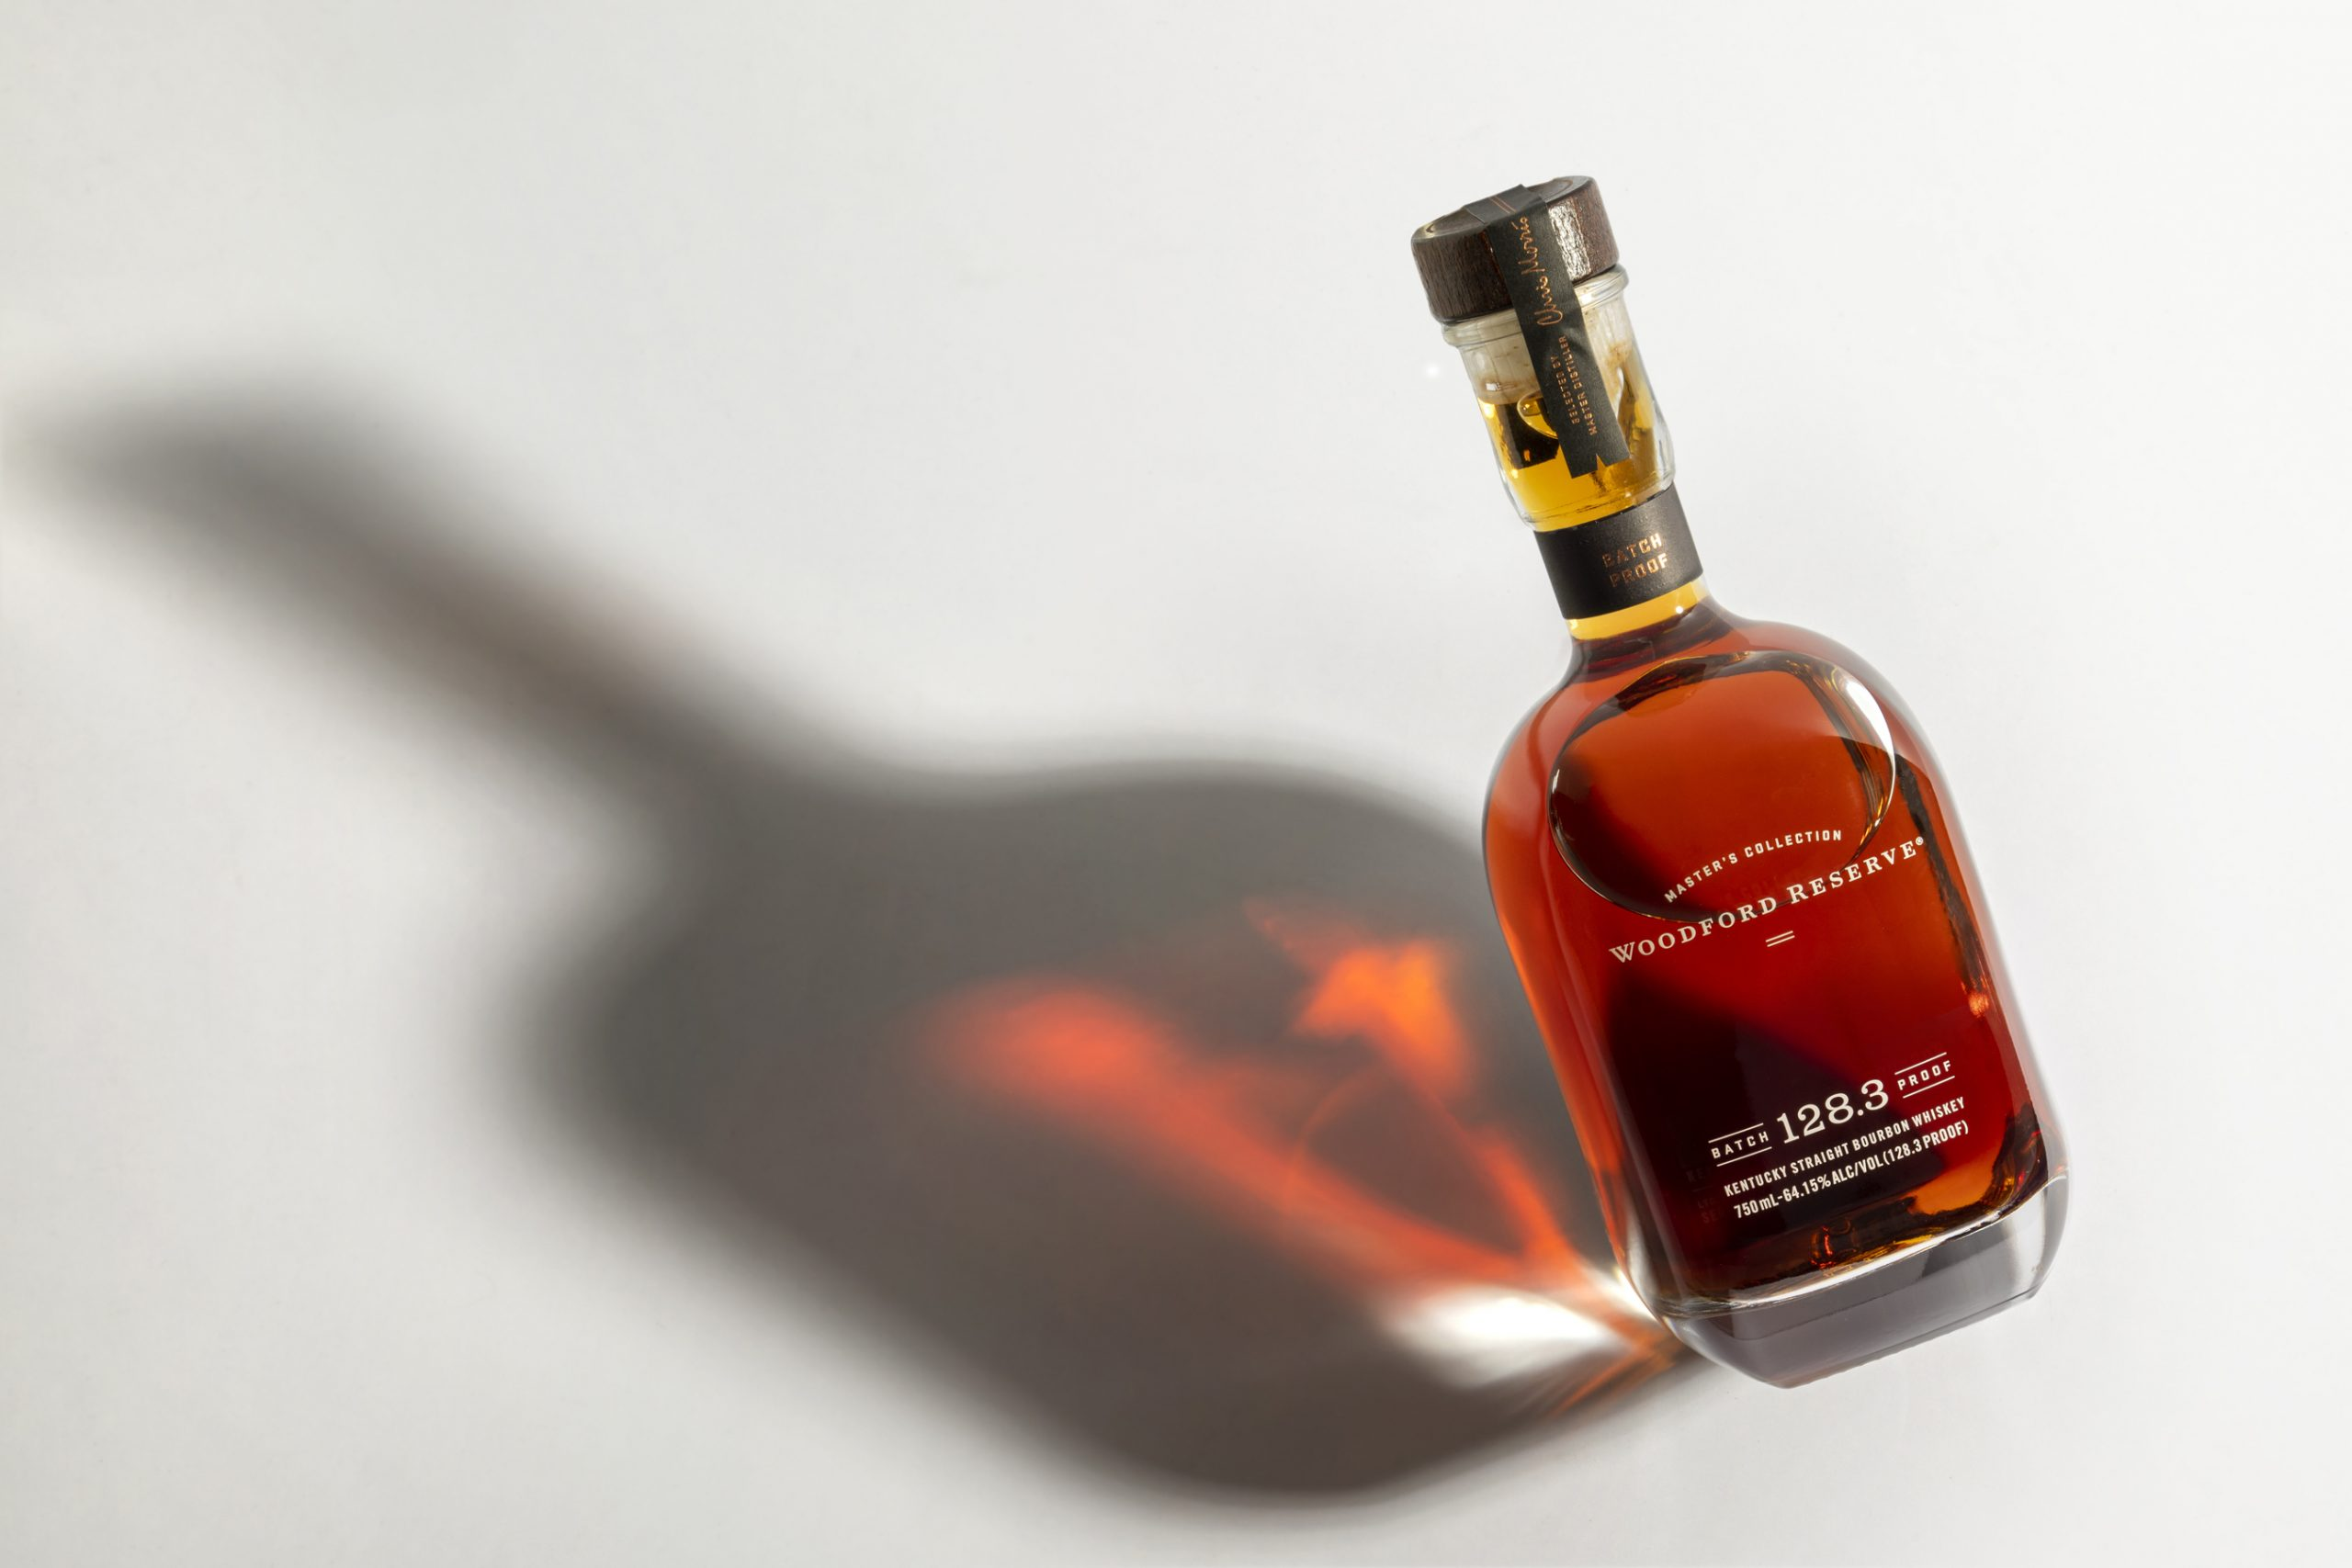 Woodford Reserve Master's Collection Batch 128.3 Proof Kentucky Straight Bourbon